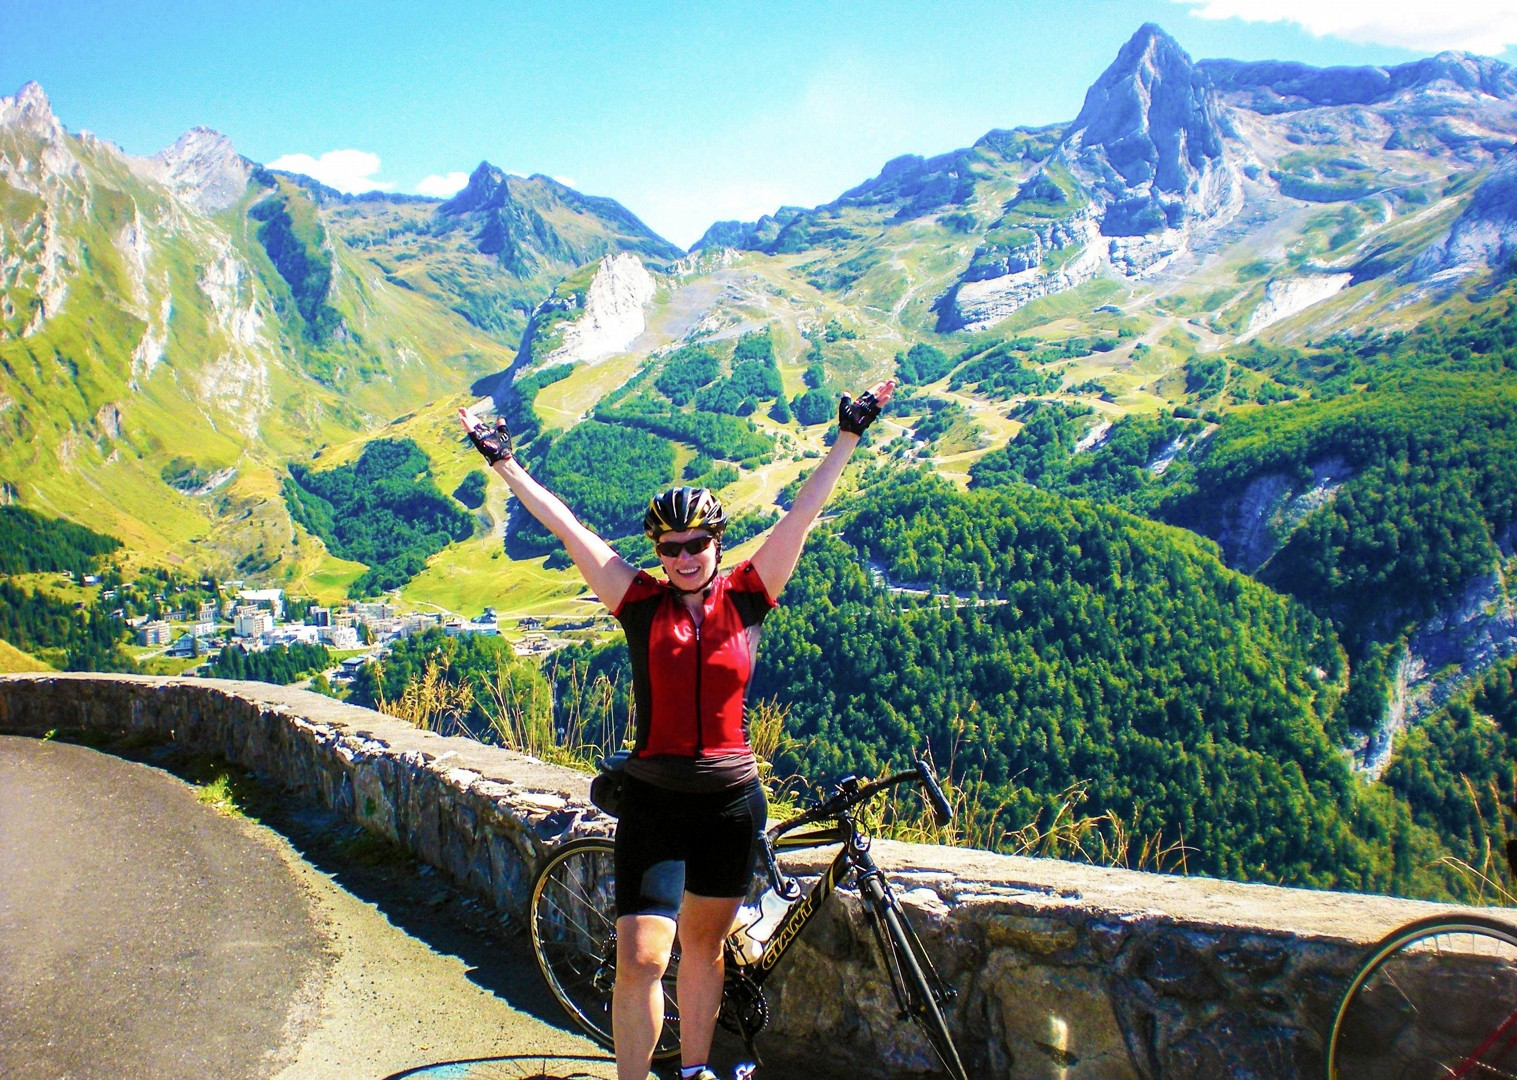 pyrenees-fitness-week-challenge-celebration-bike-ride-cycling.jpg - France - Pyrenees Fitness Week (Grade 2-3) - Guided Road Cycling Holiday - Road Cycling